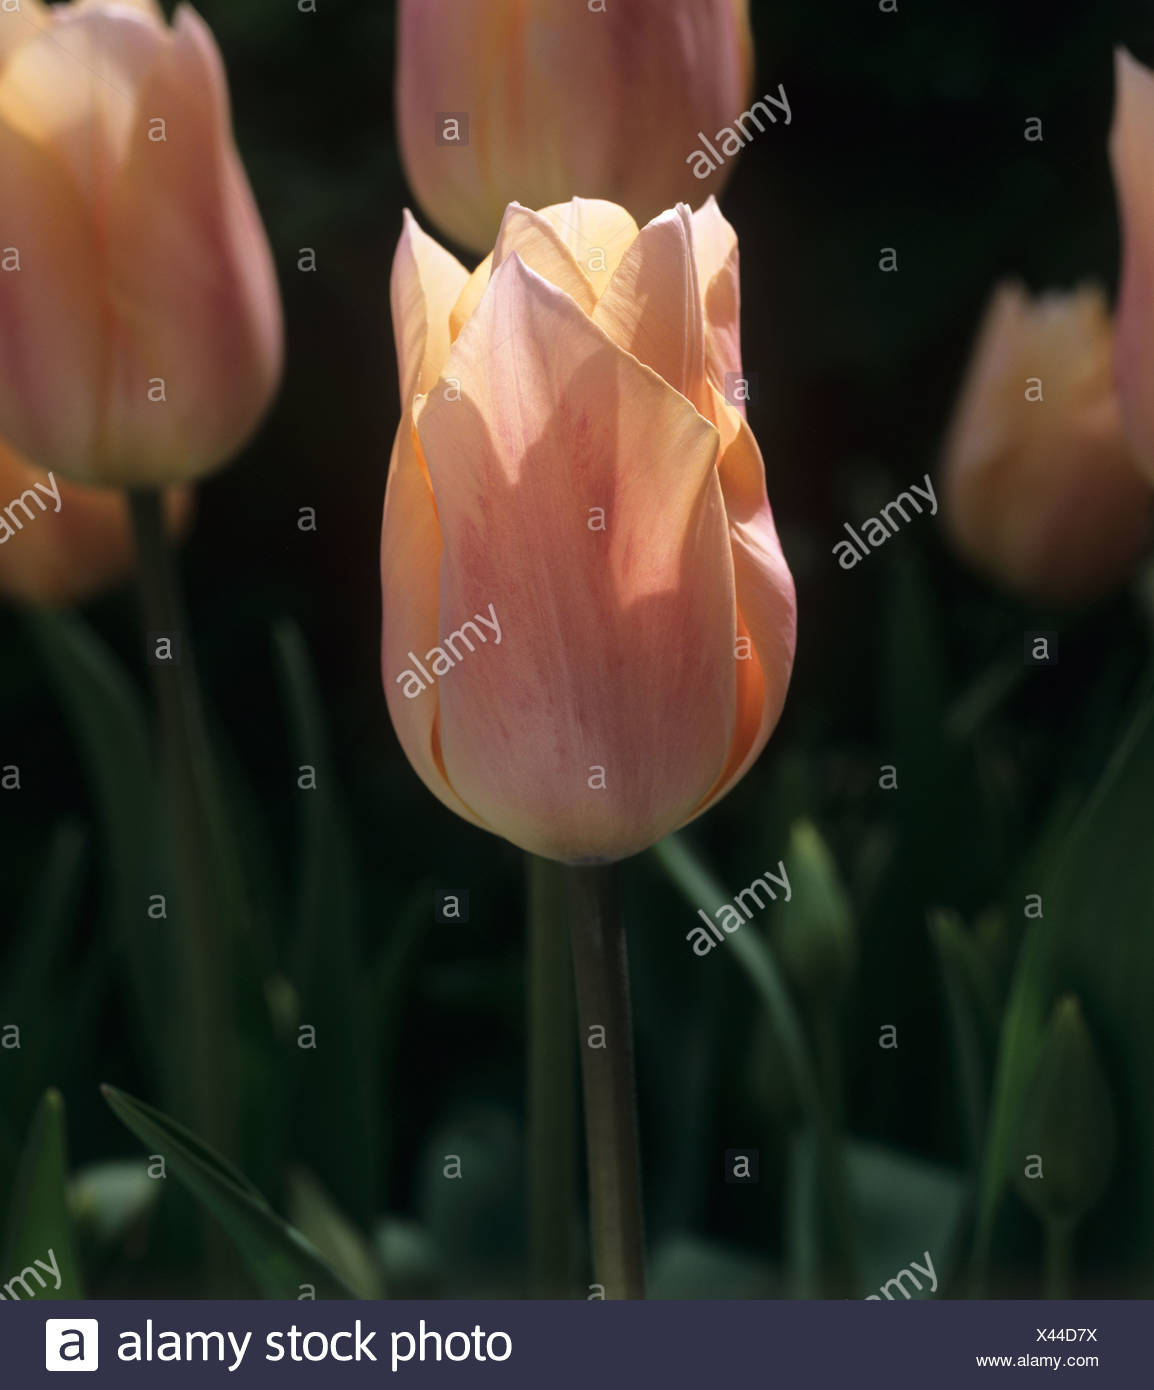 Flowers of tulip Apricot Beauty a division 4 tulip - Stock Image